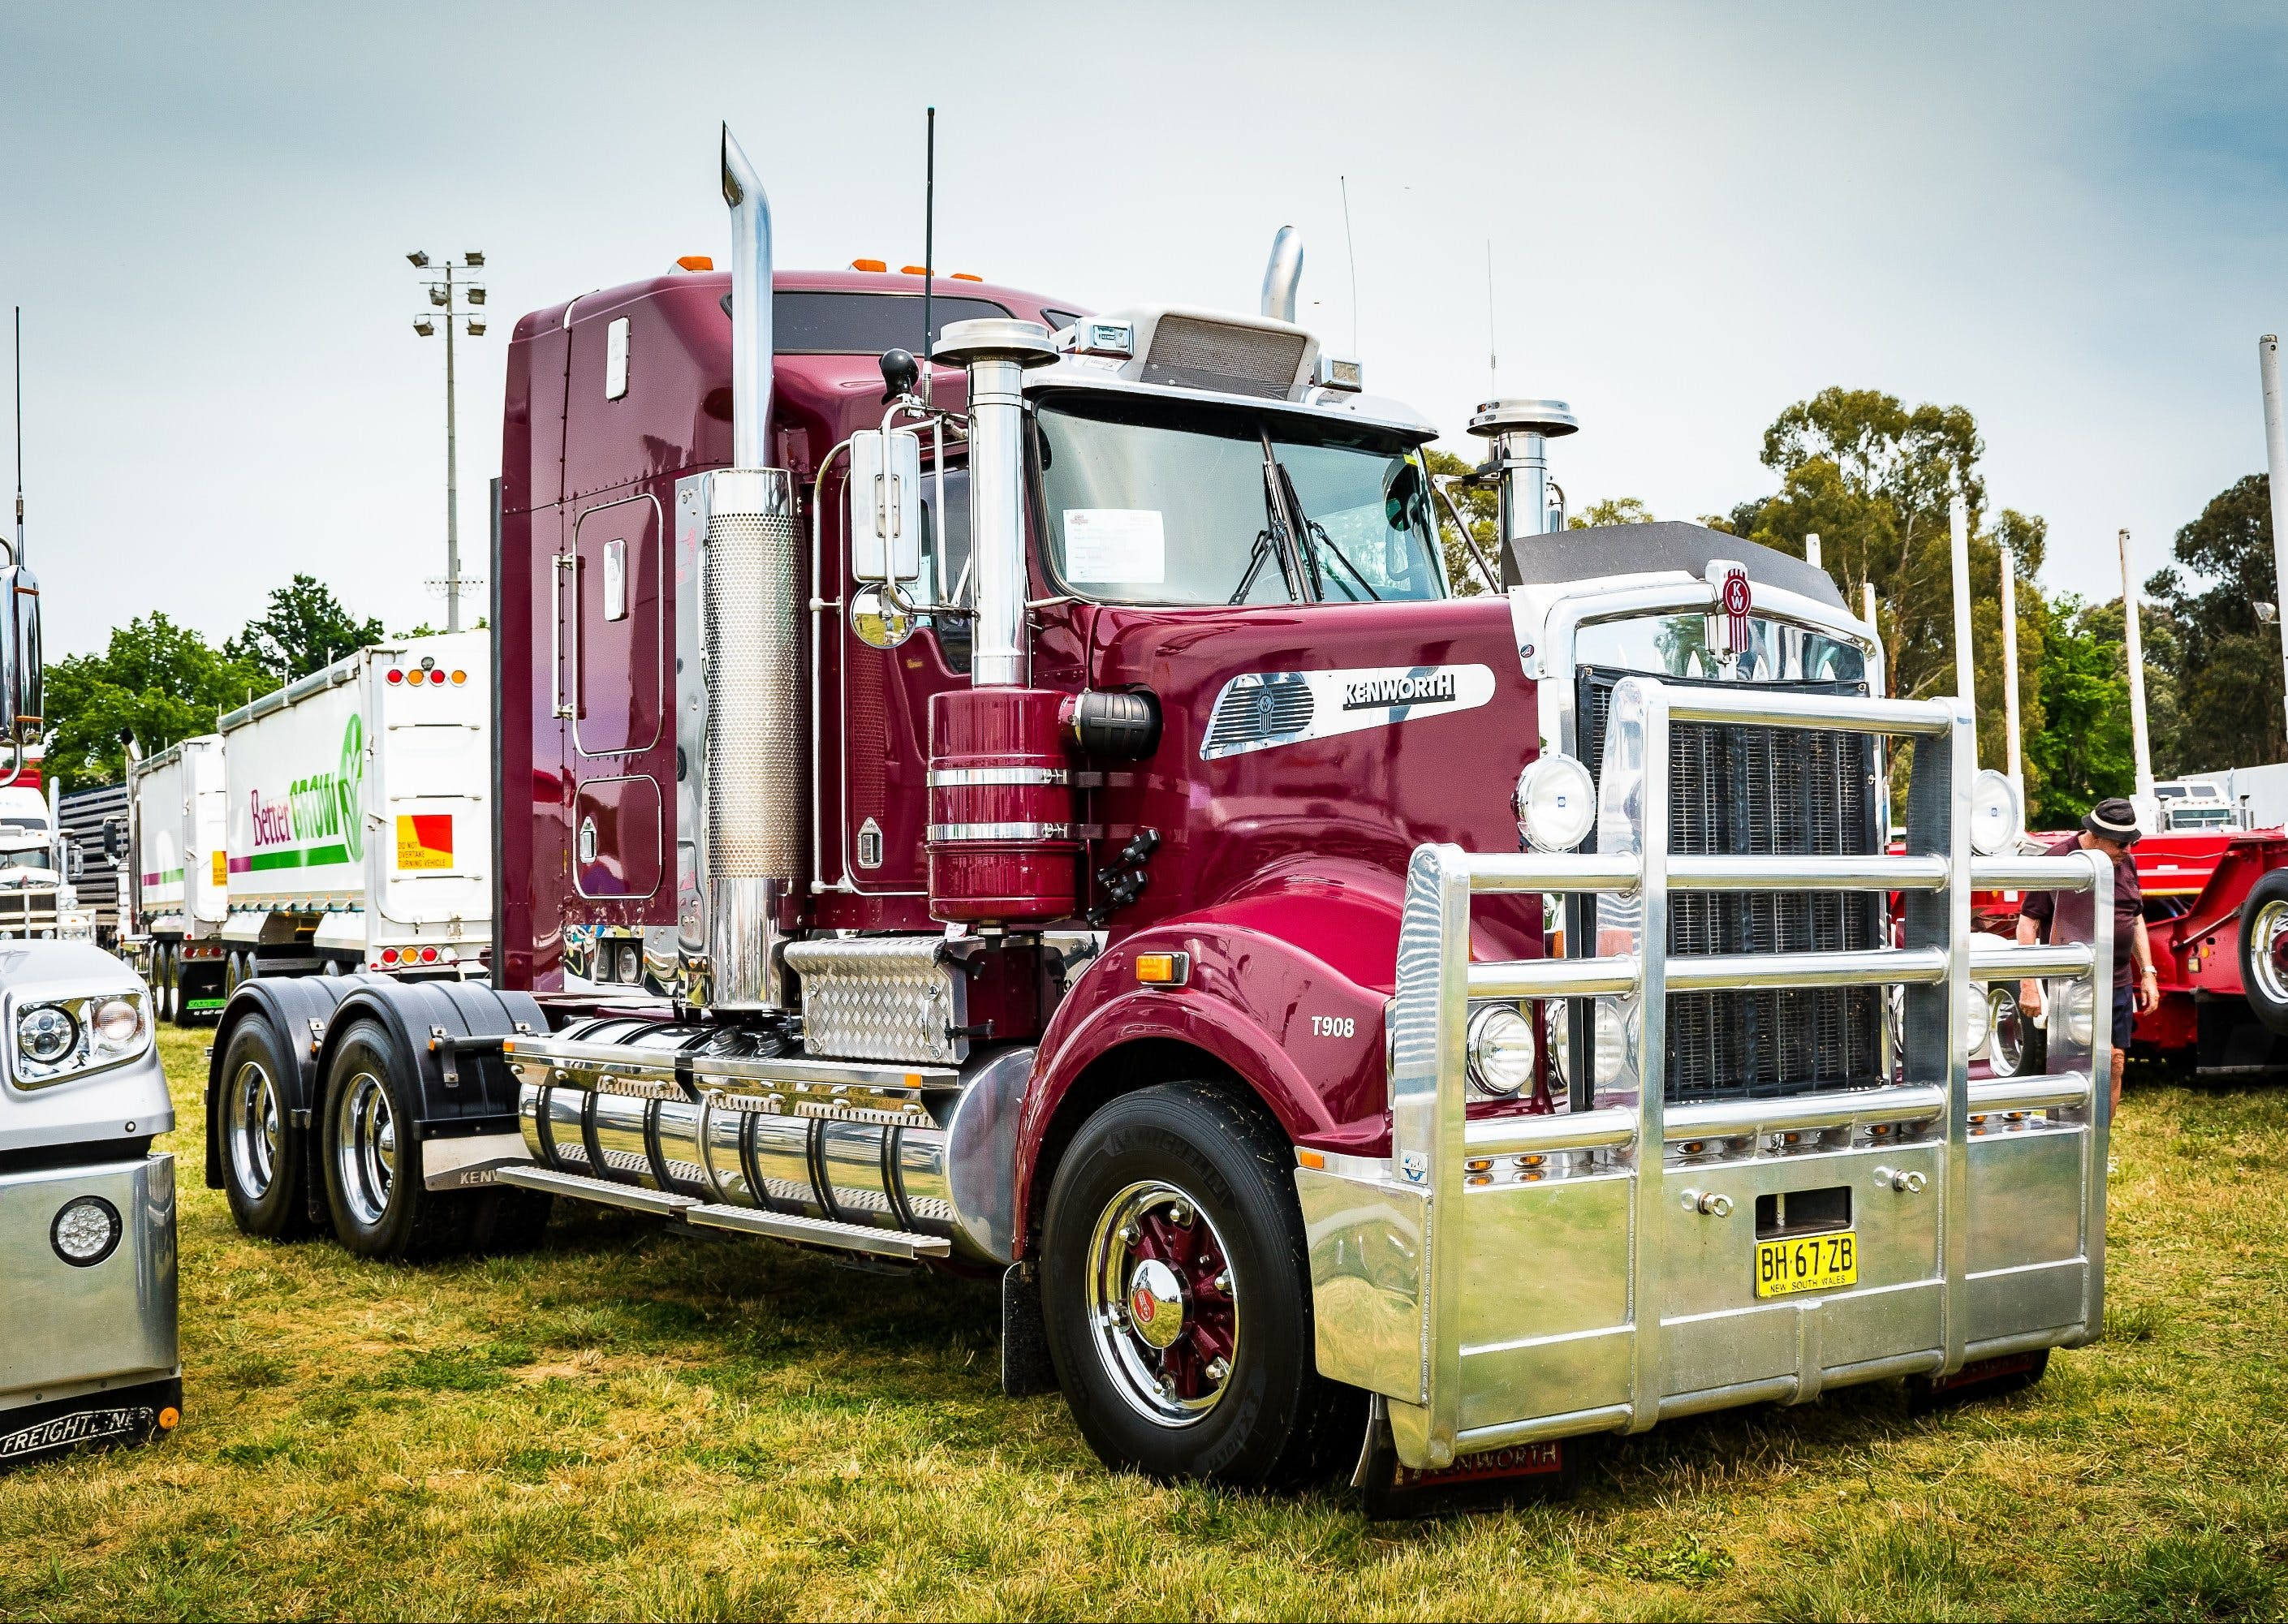 Dane Ballinger Memorial Truck Show - VIC Tourism